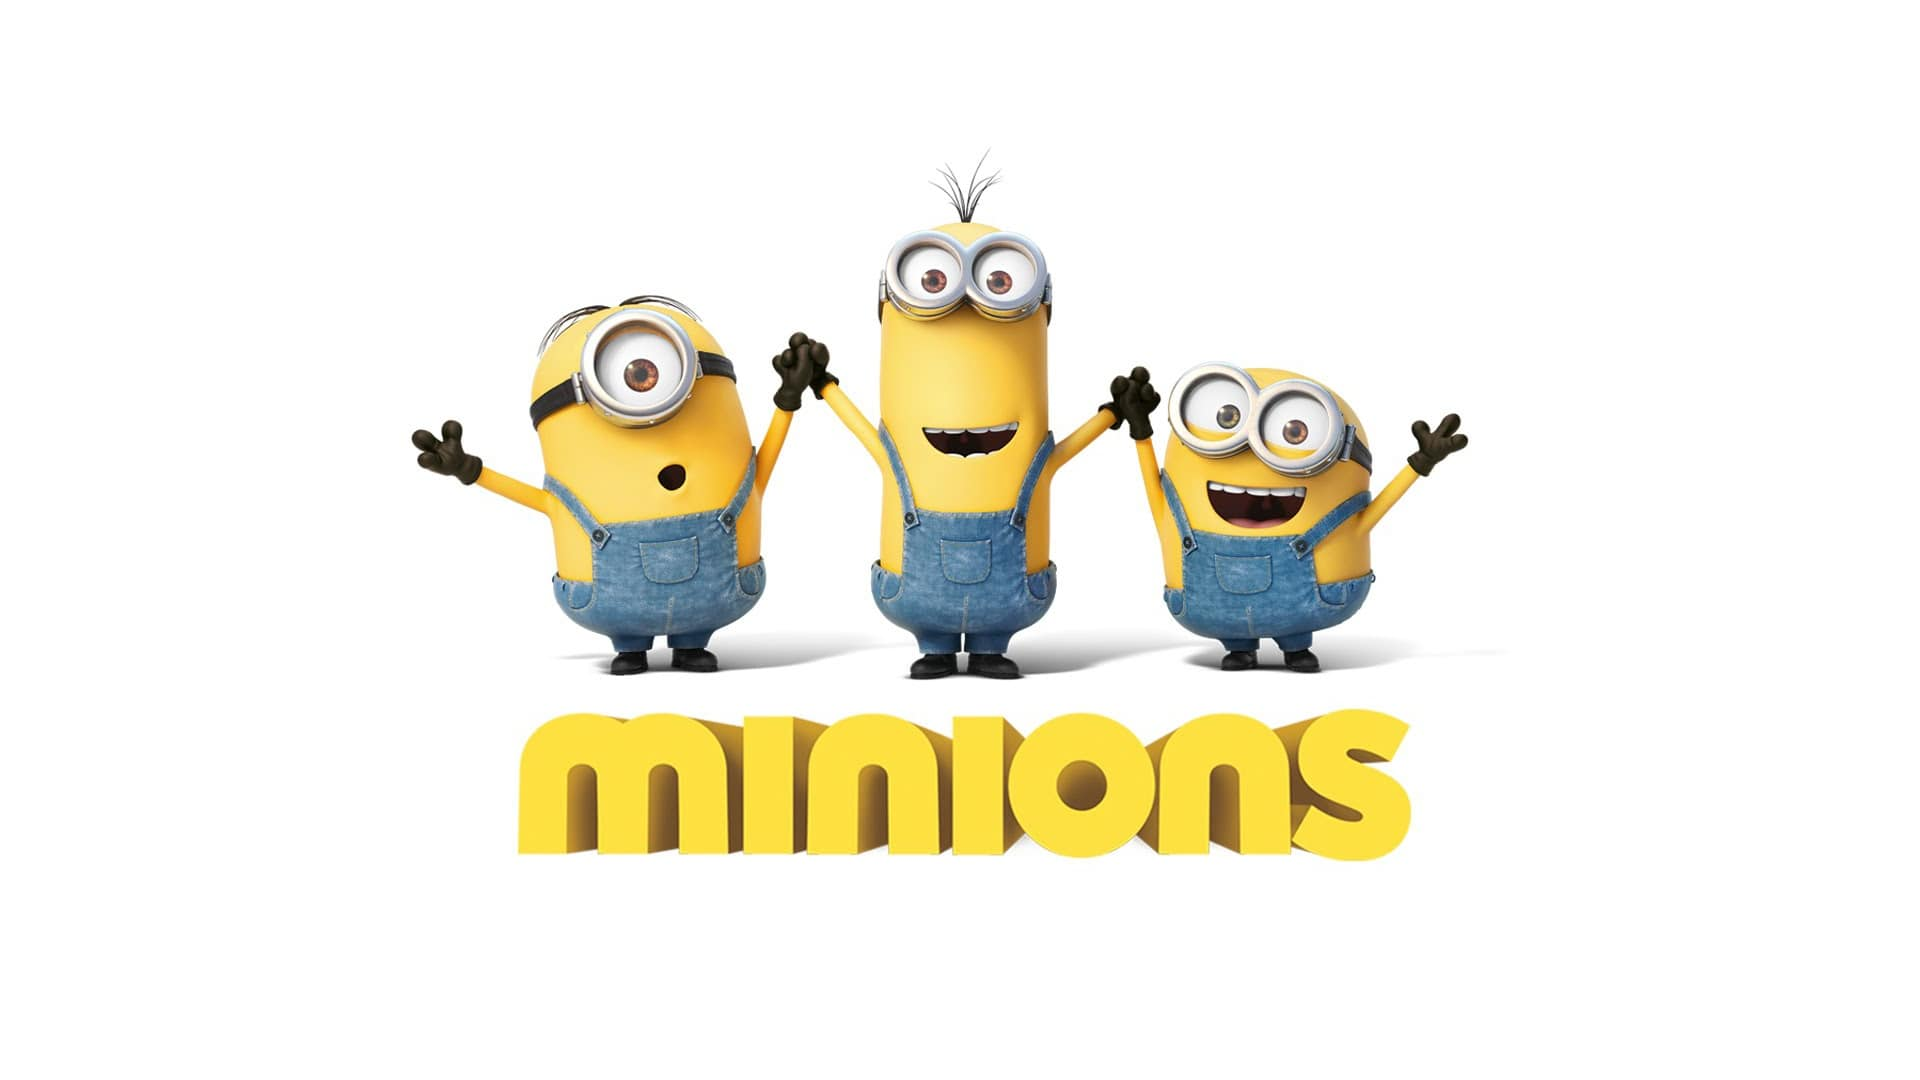 minions hd desktop wallpapers | 7wallpapers